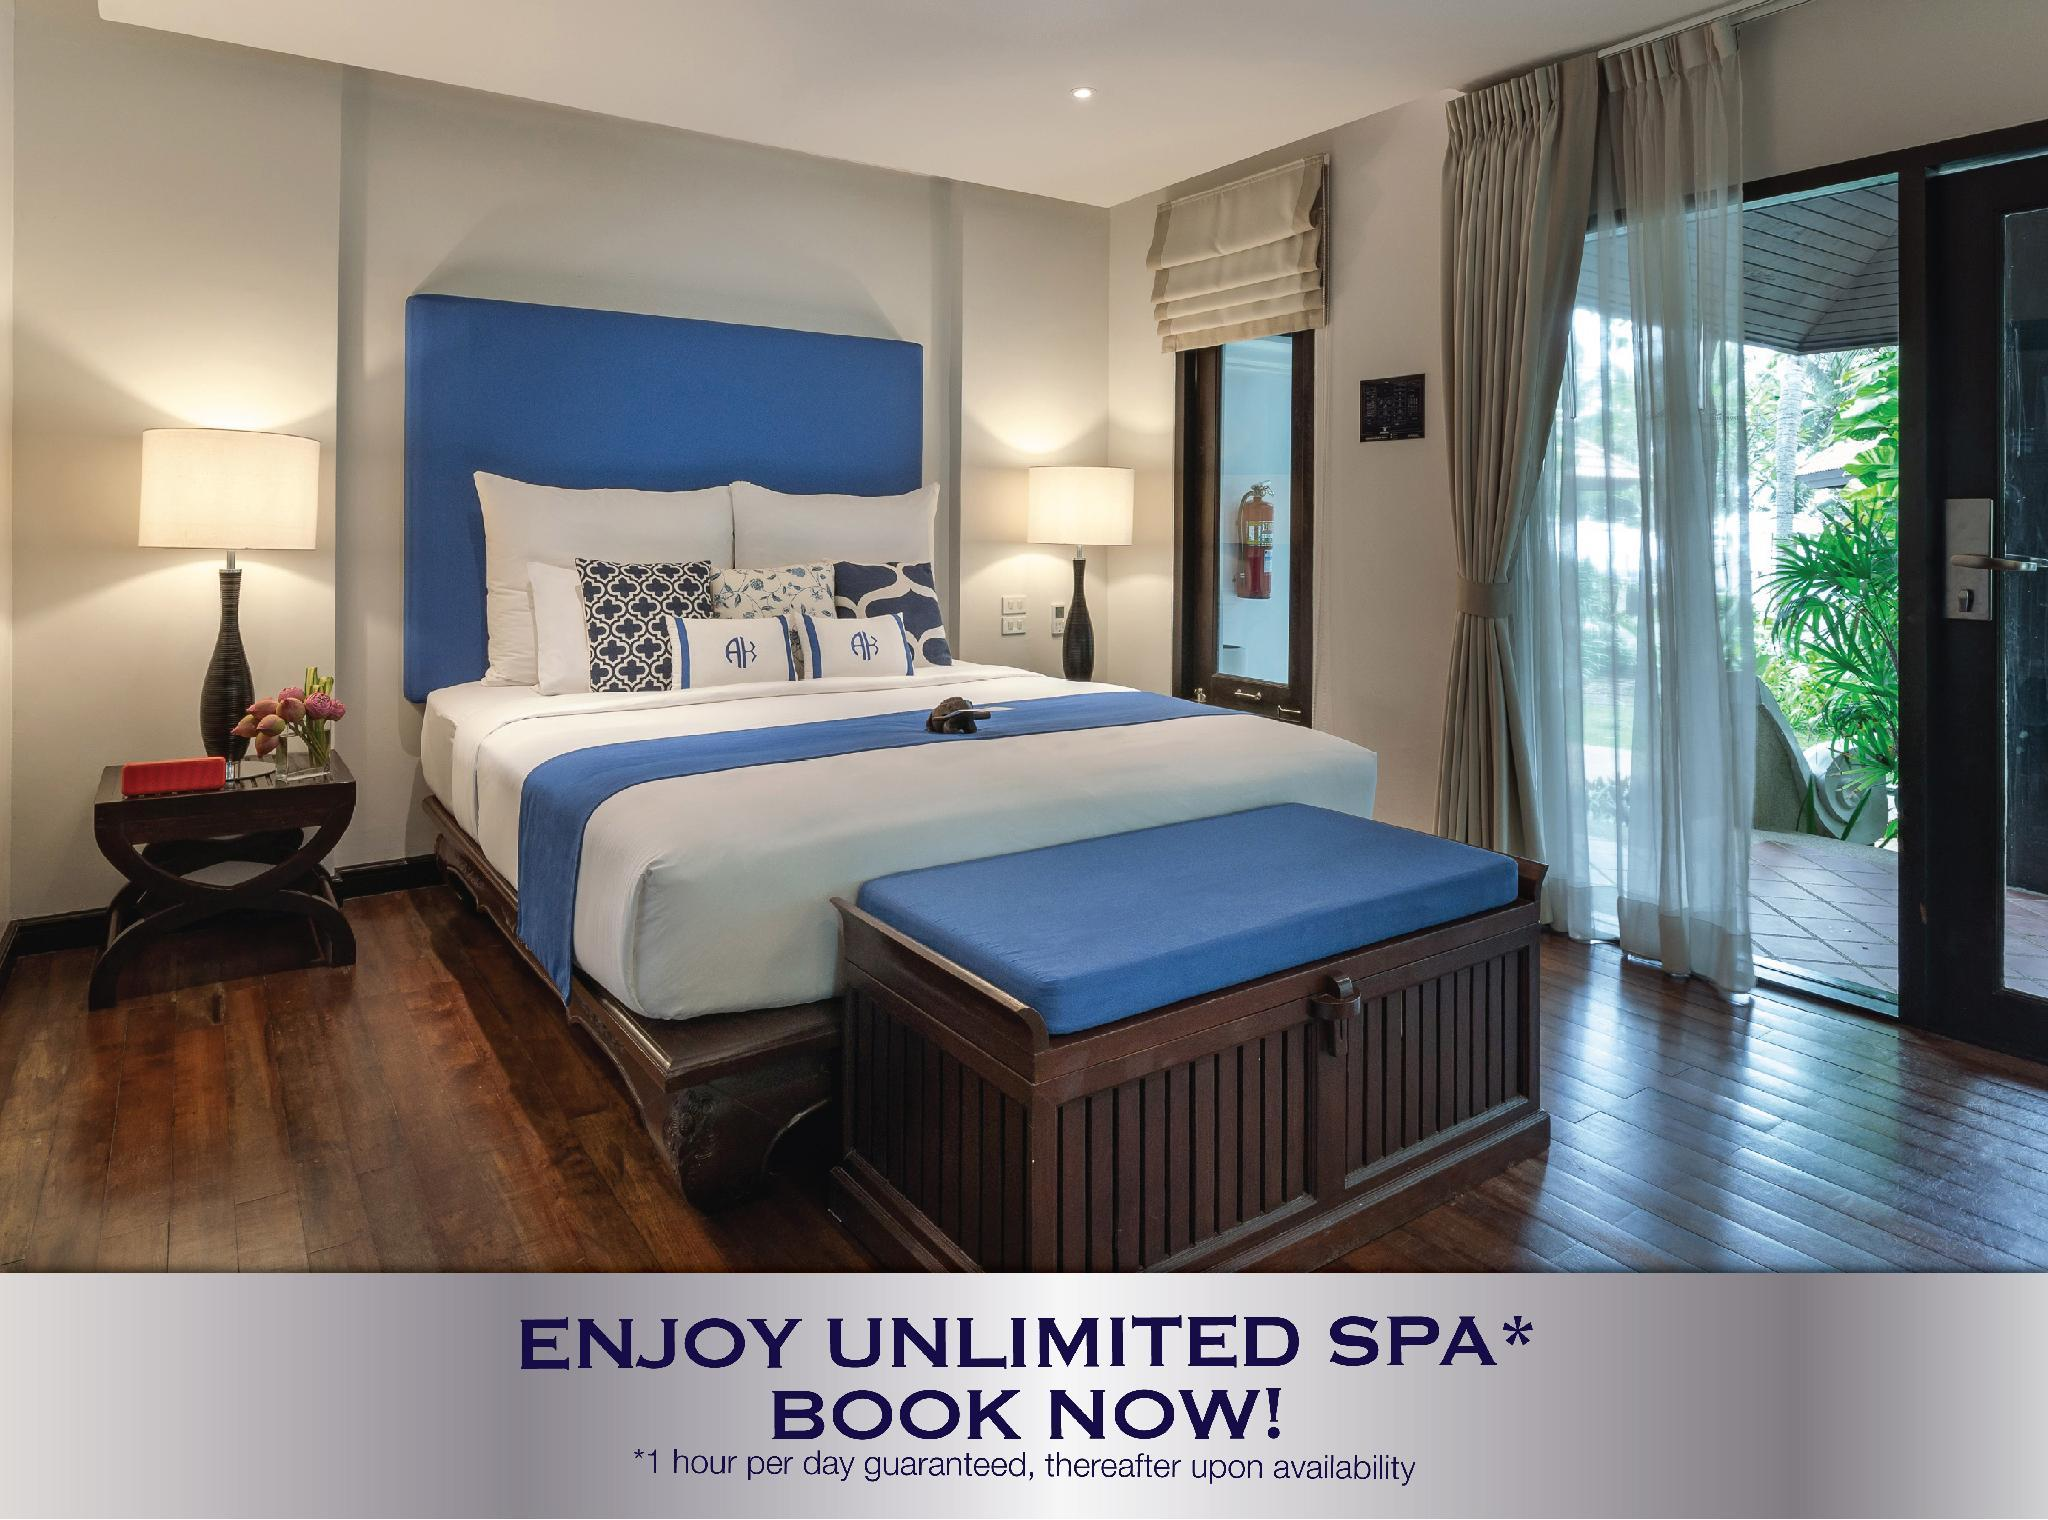 Garden Villa - Unlimited Spa Treatment Included